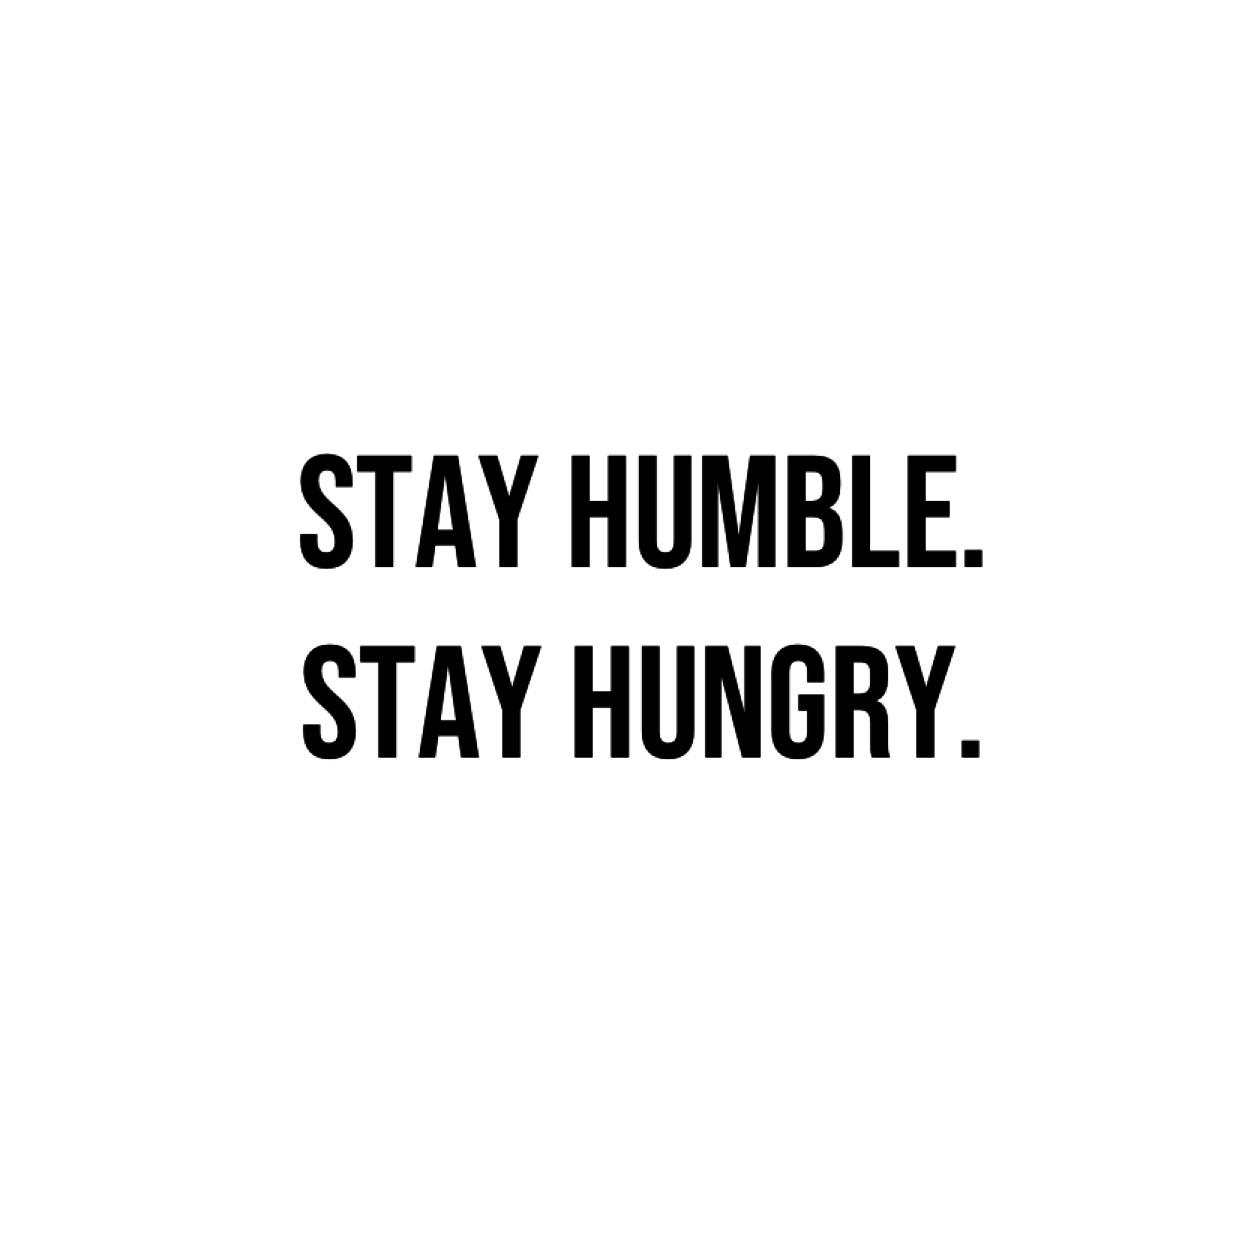 [image] Stay.